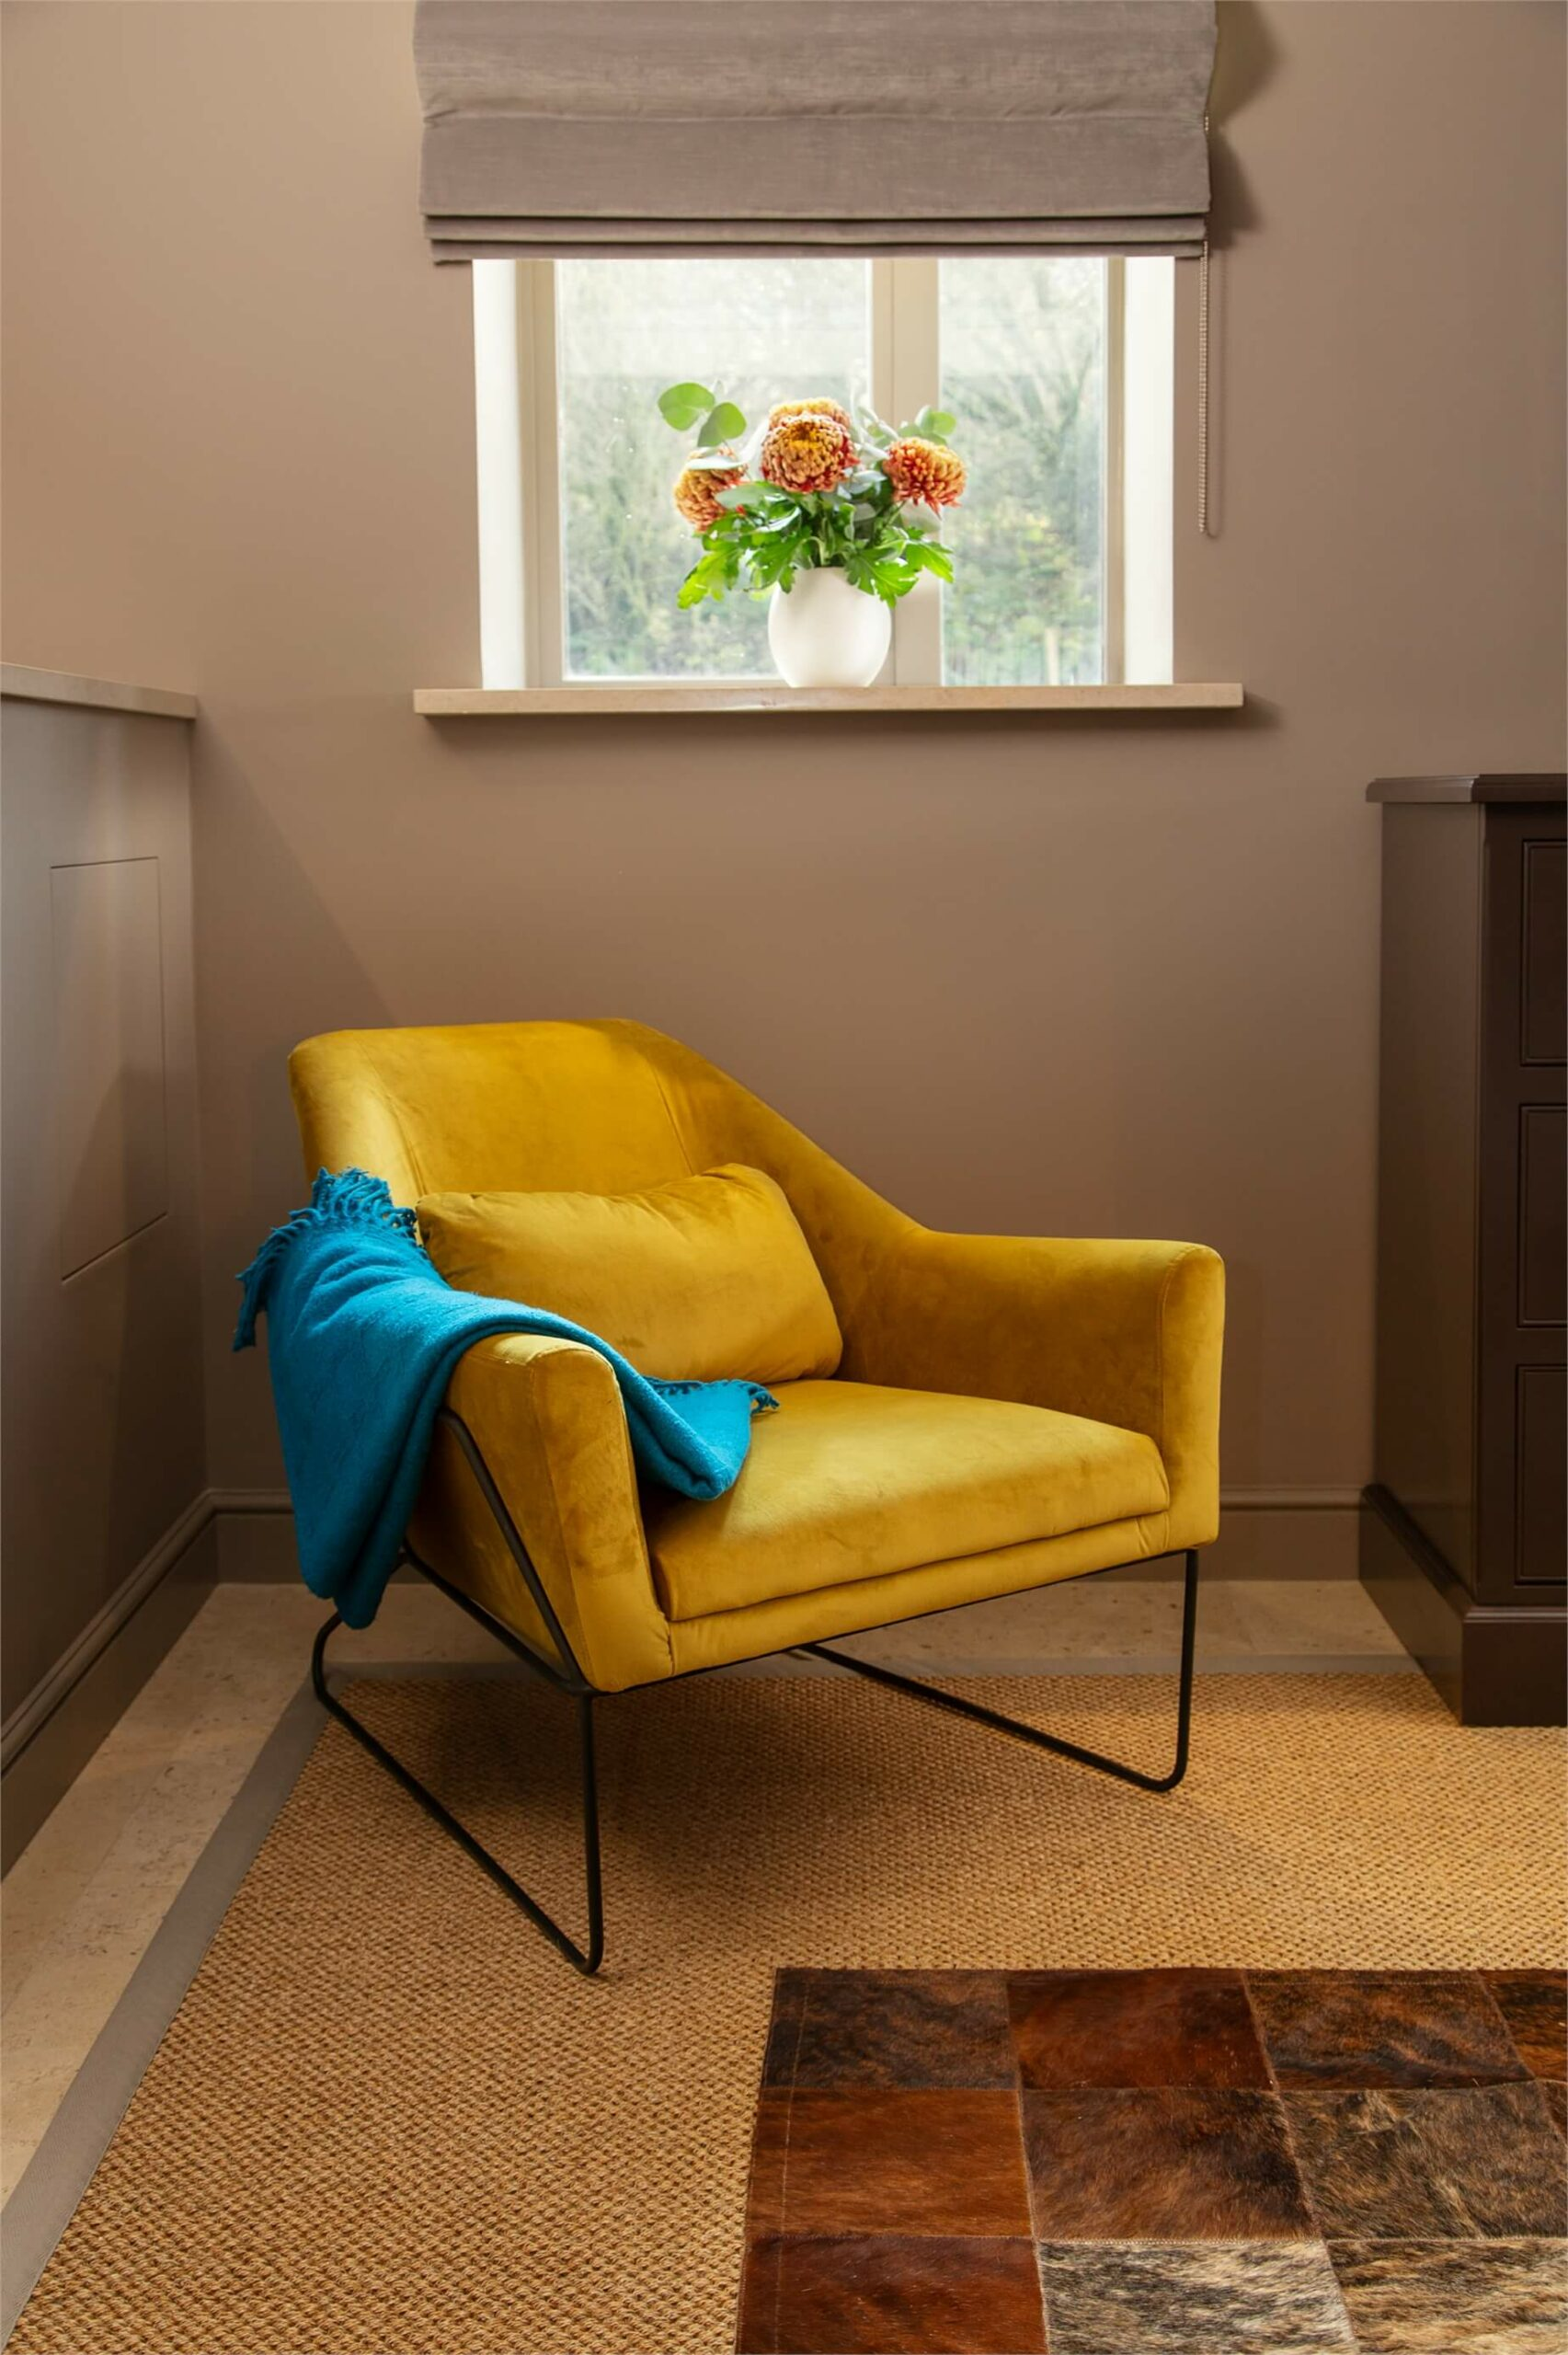 A vibrant chair complements this hide rug in a corner of this luxurious bedroom